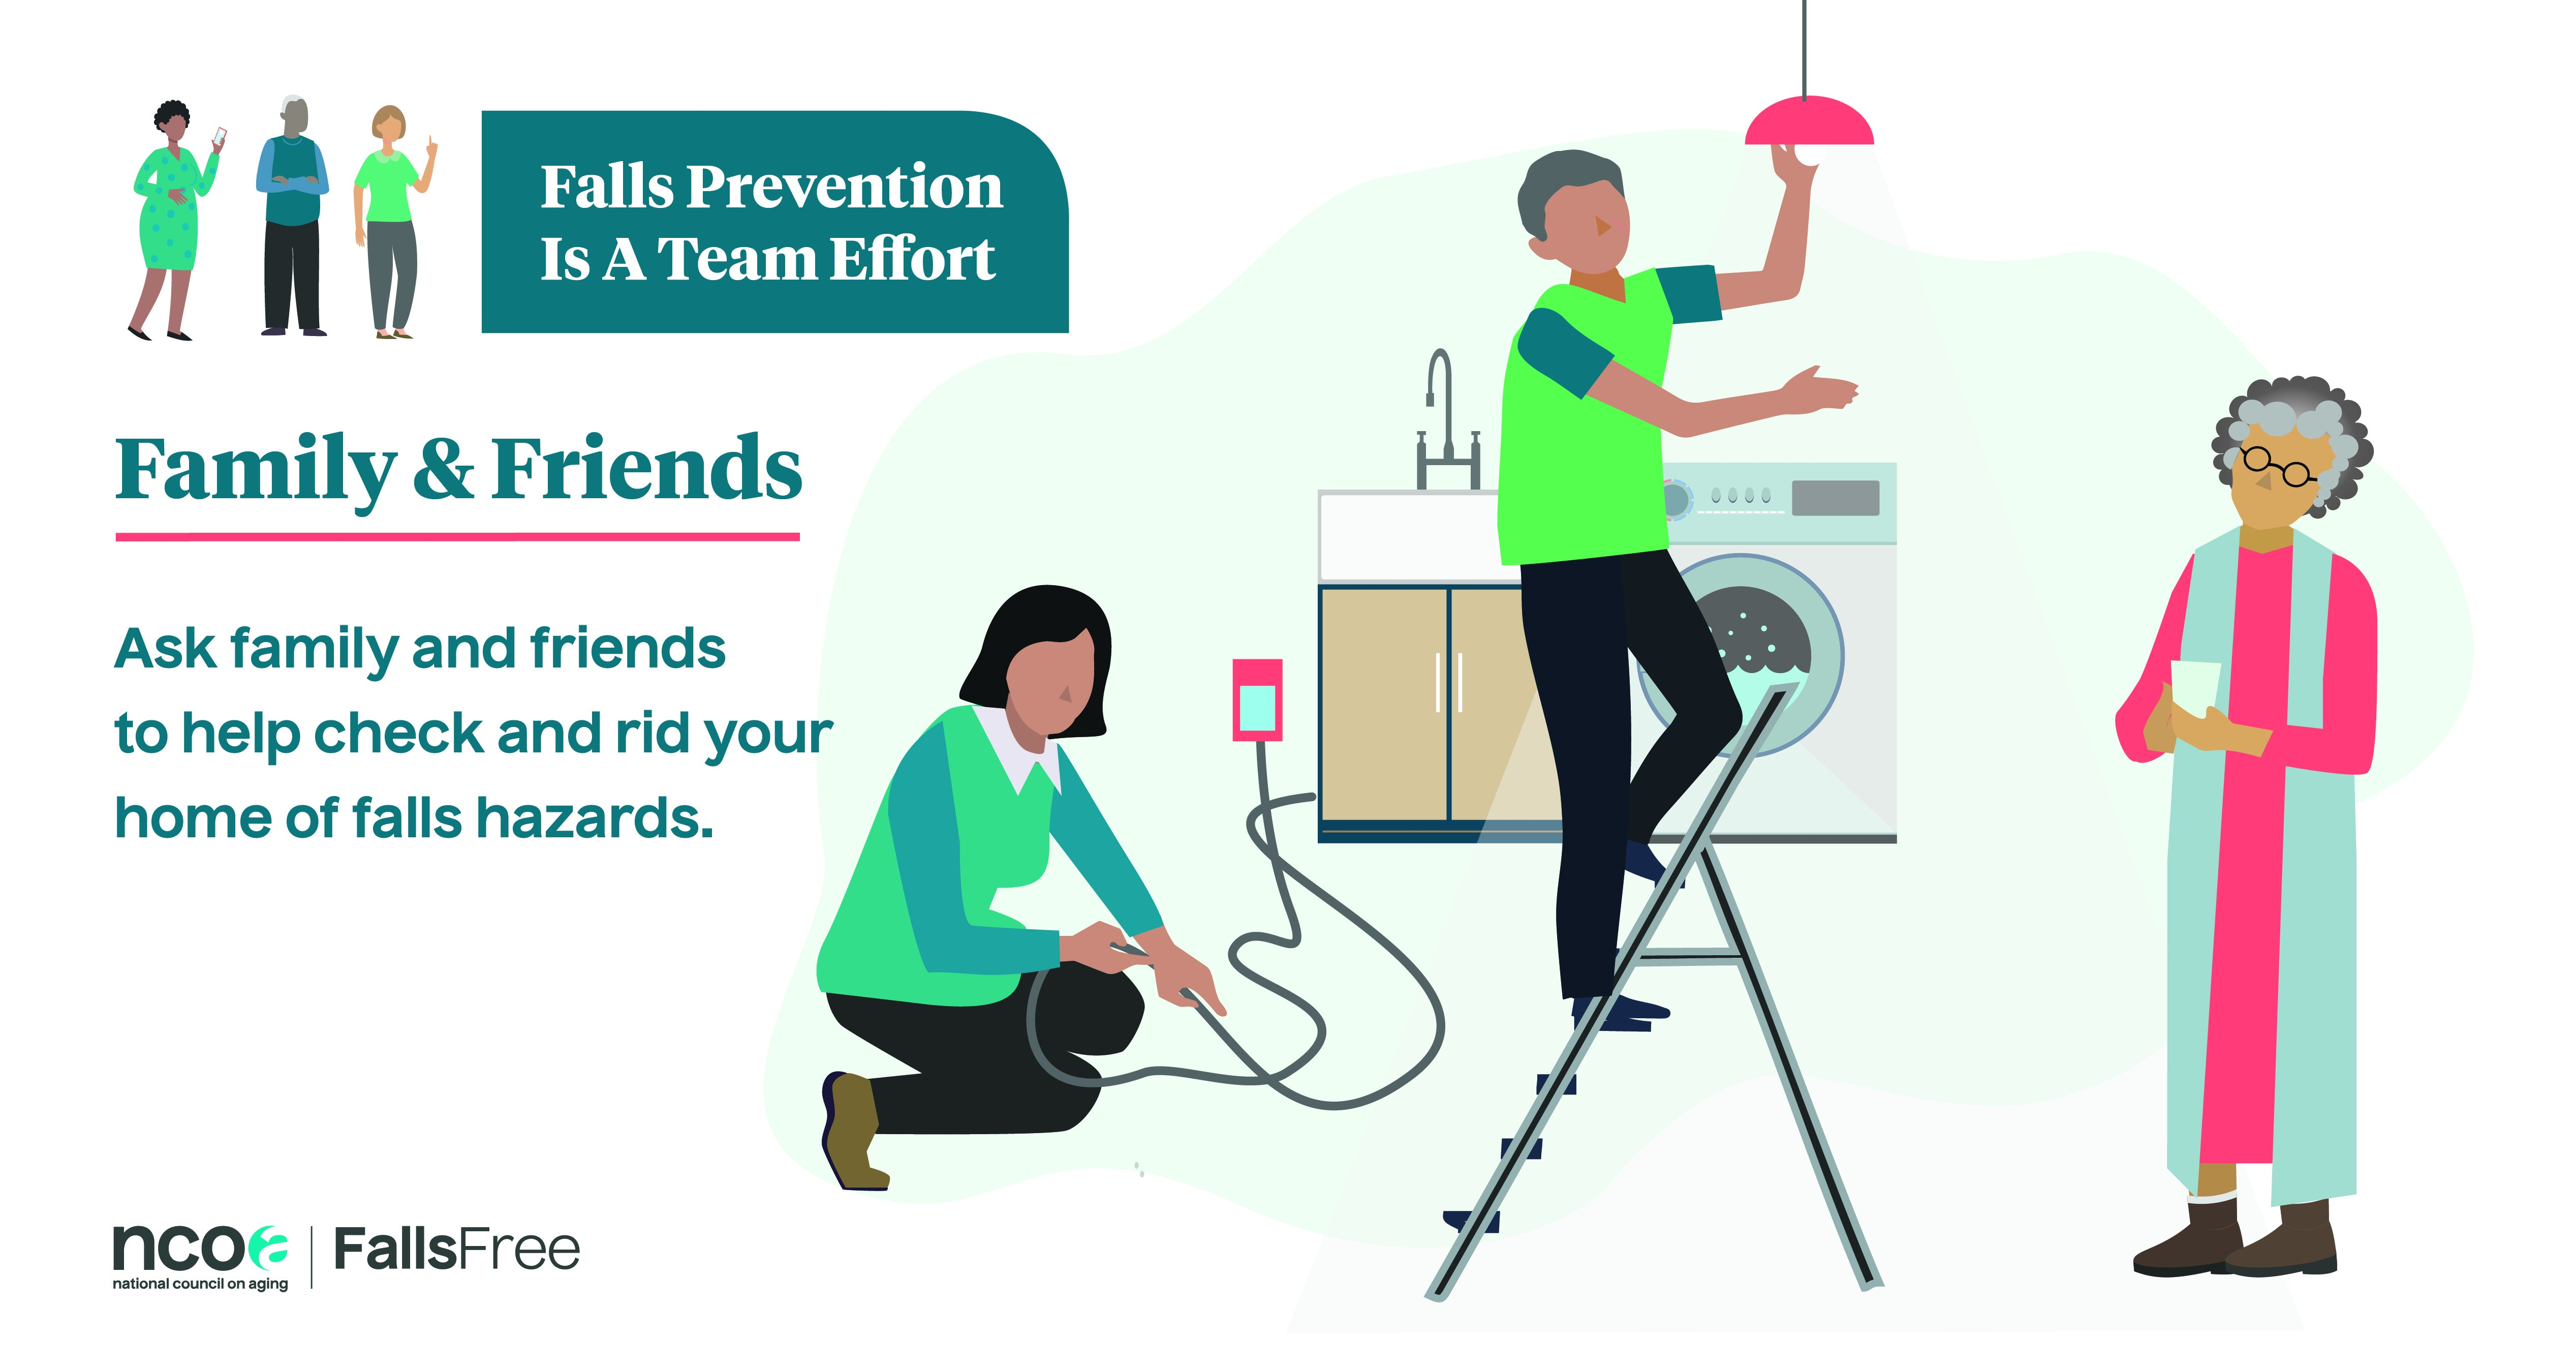 Falls prevention is a team effort. Ask family and friends to help check and rid your home of falls hazards.